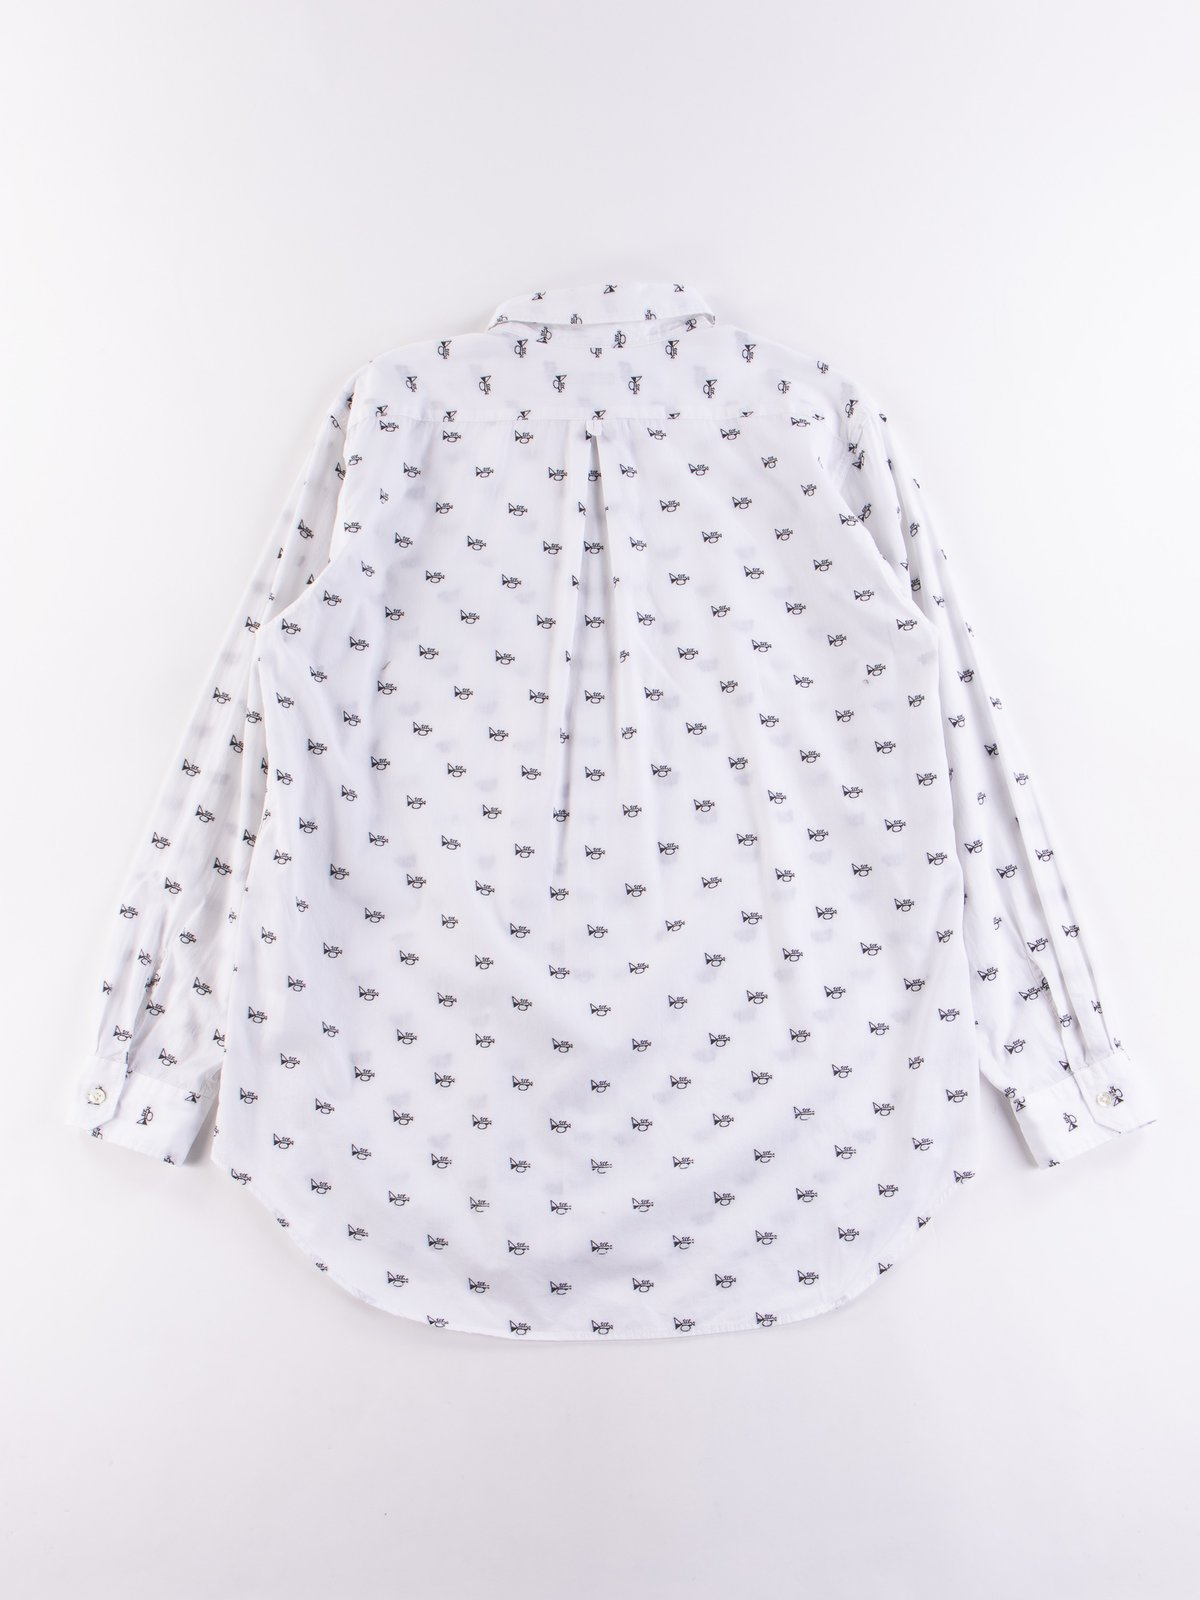 White Trumpet Embroidery Broadcloth Tab Collar Shirt - Image 5